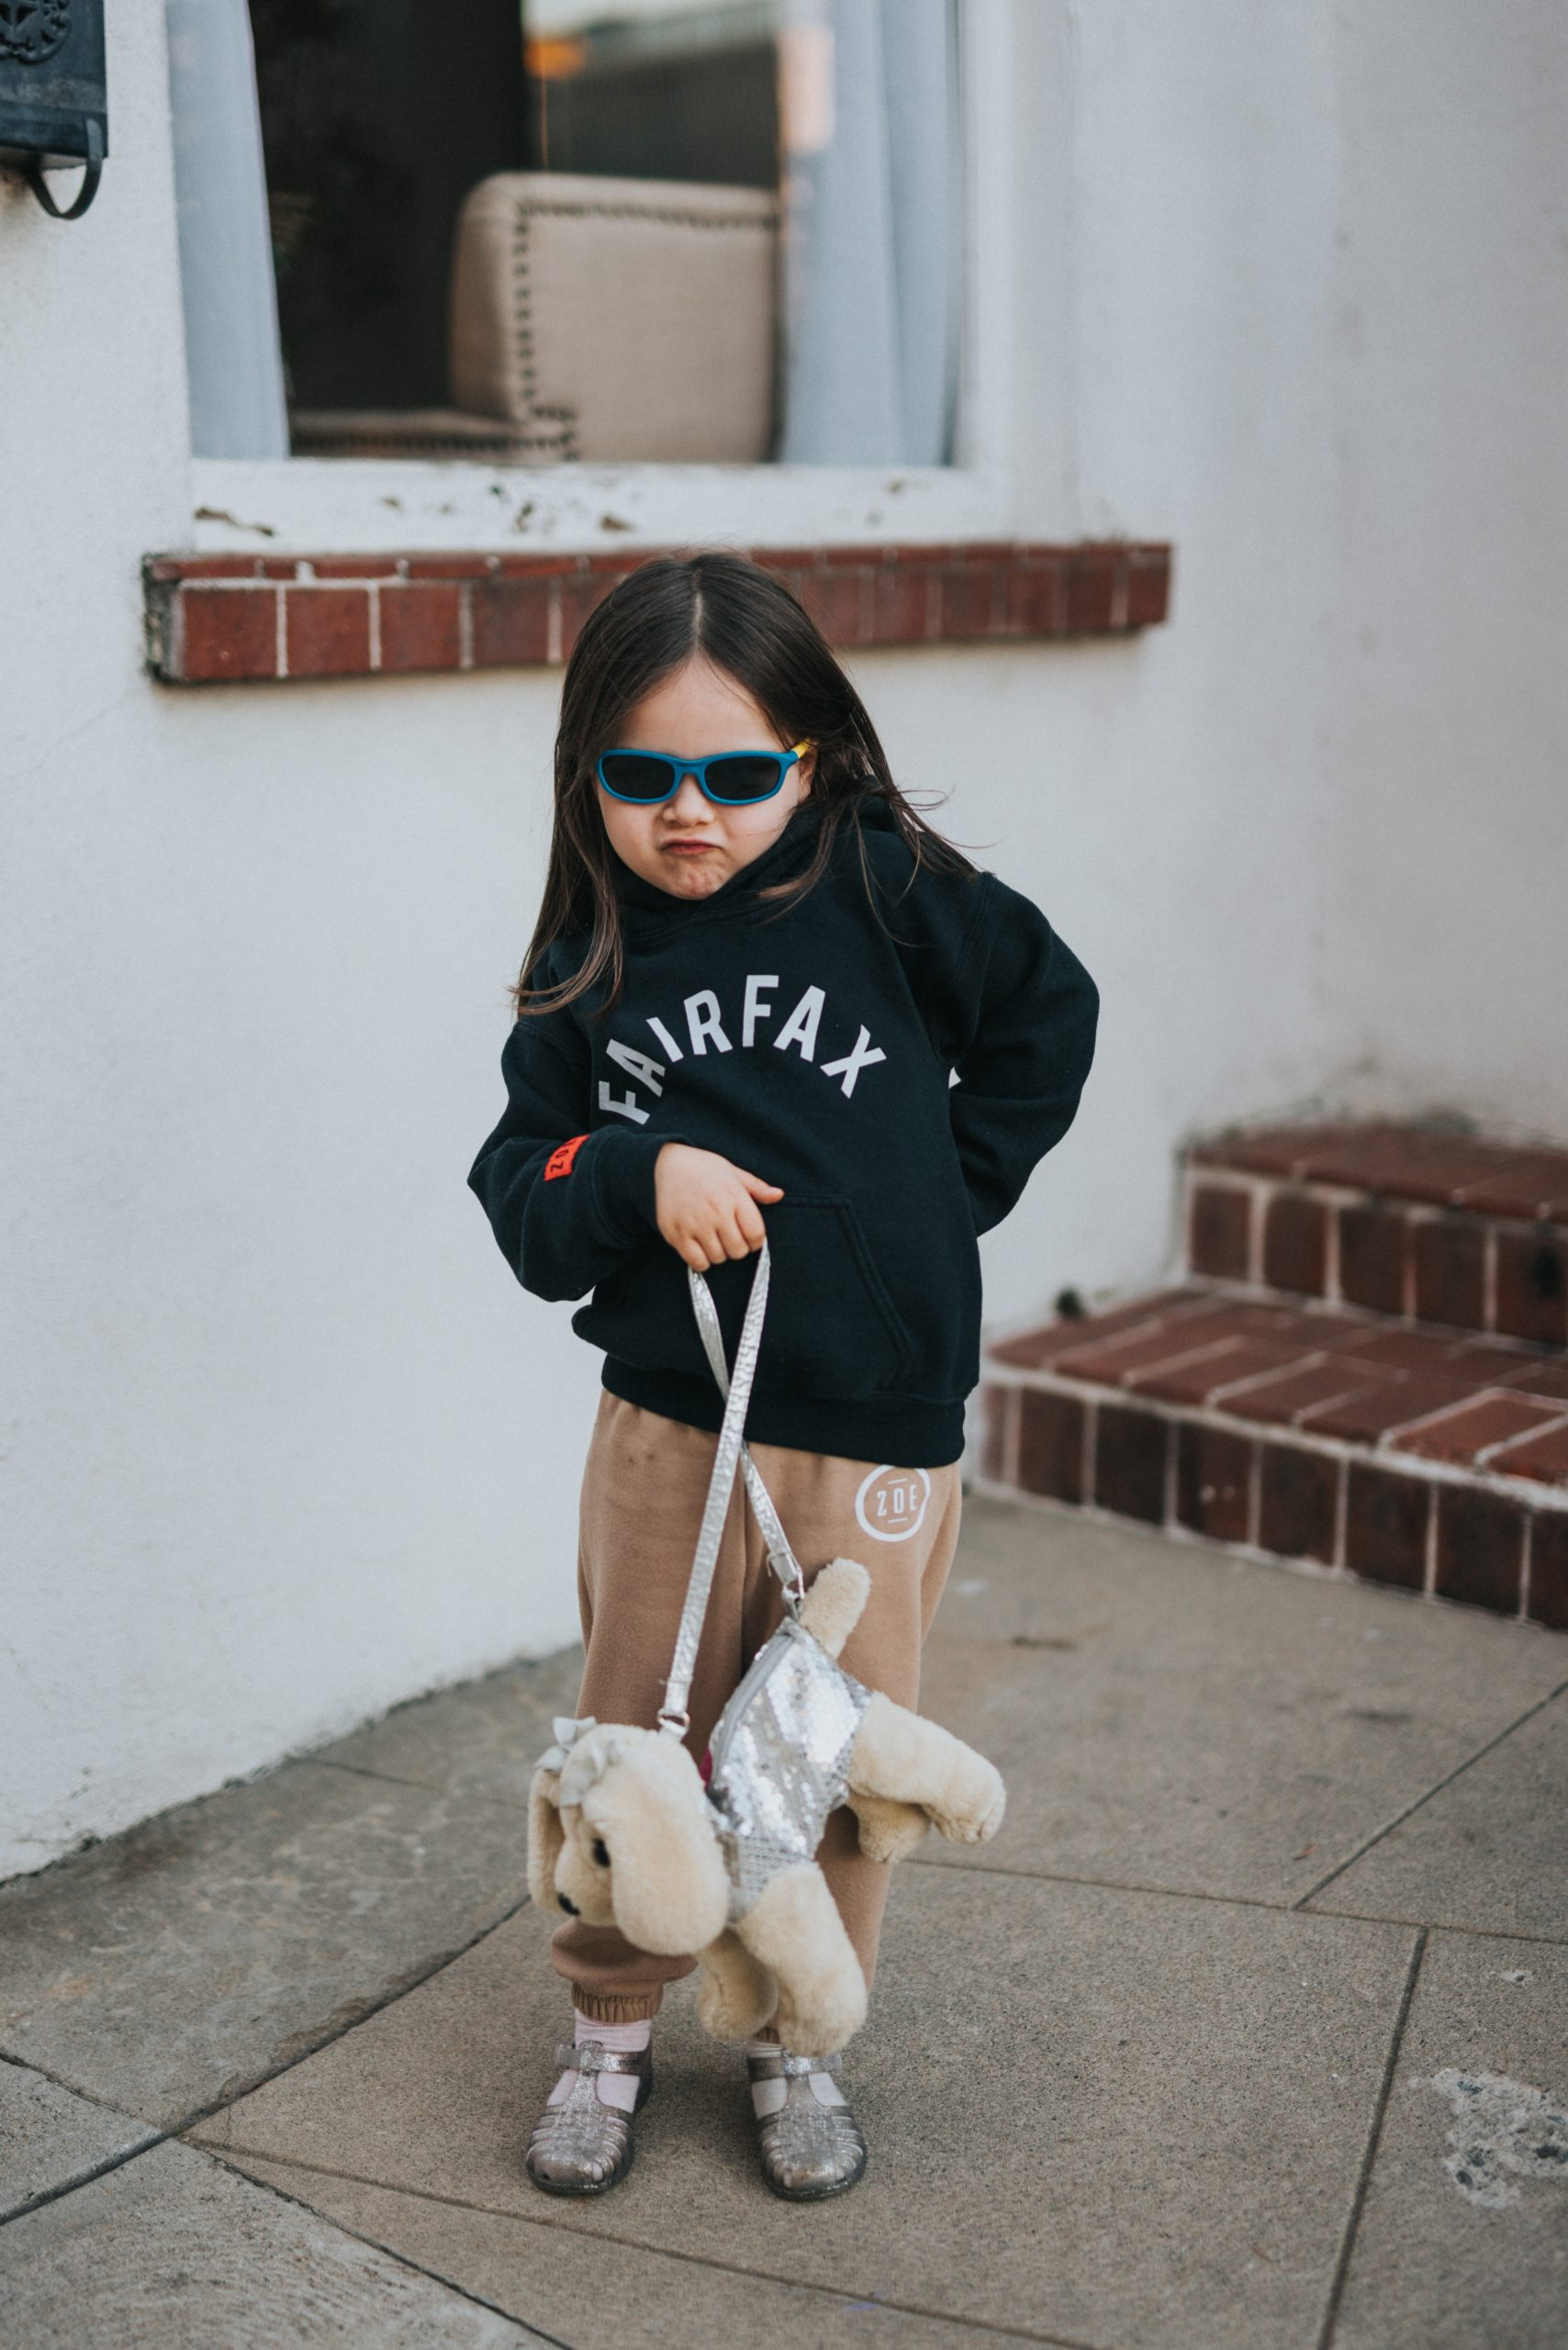 young girl wearing sunglasses and holding a dog purse